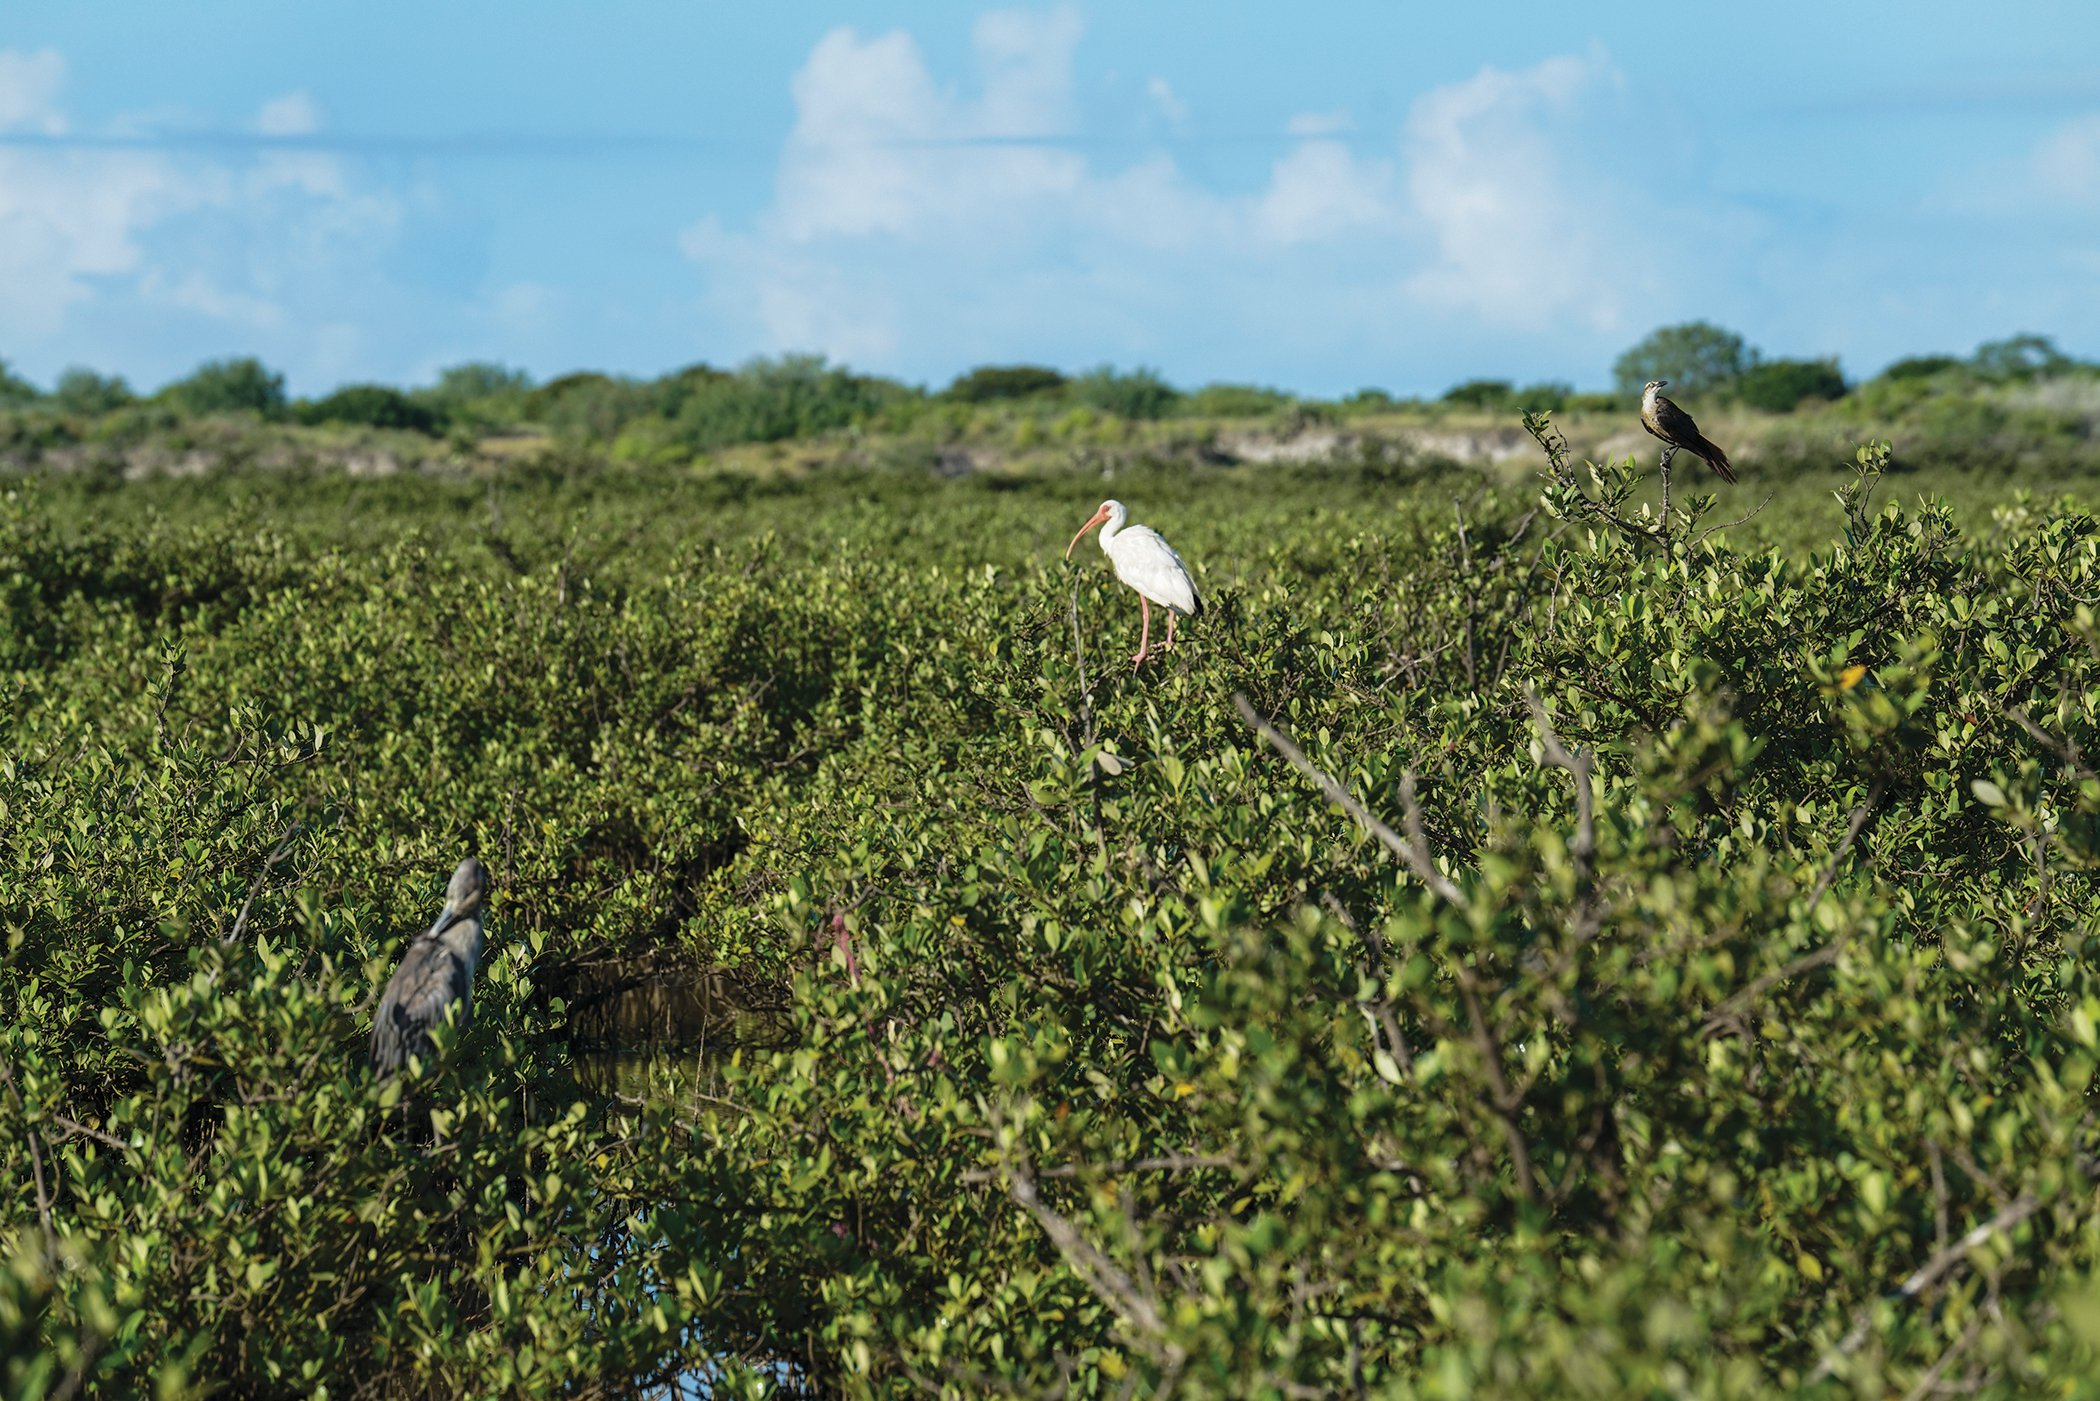 Birds perch among mangroves at a proposed LNG site.